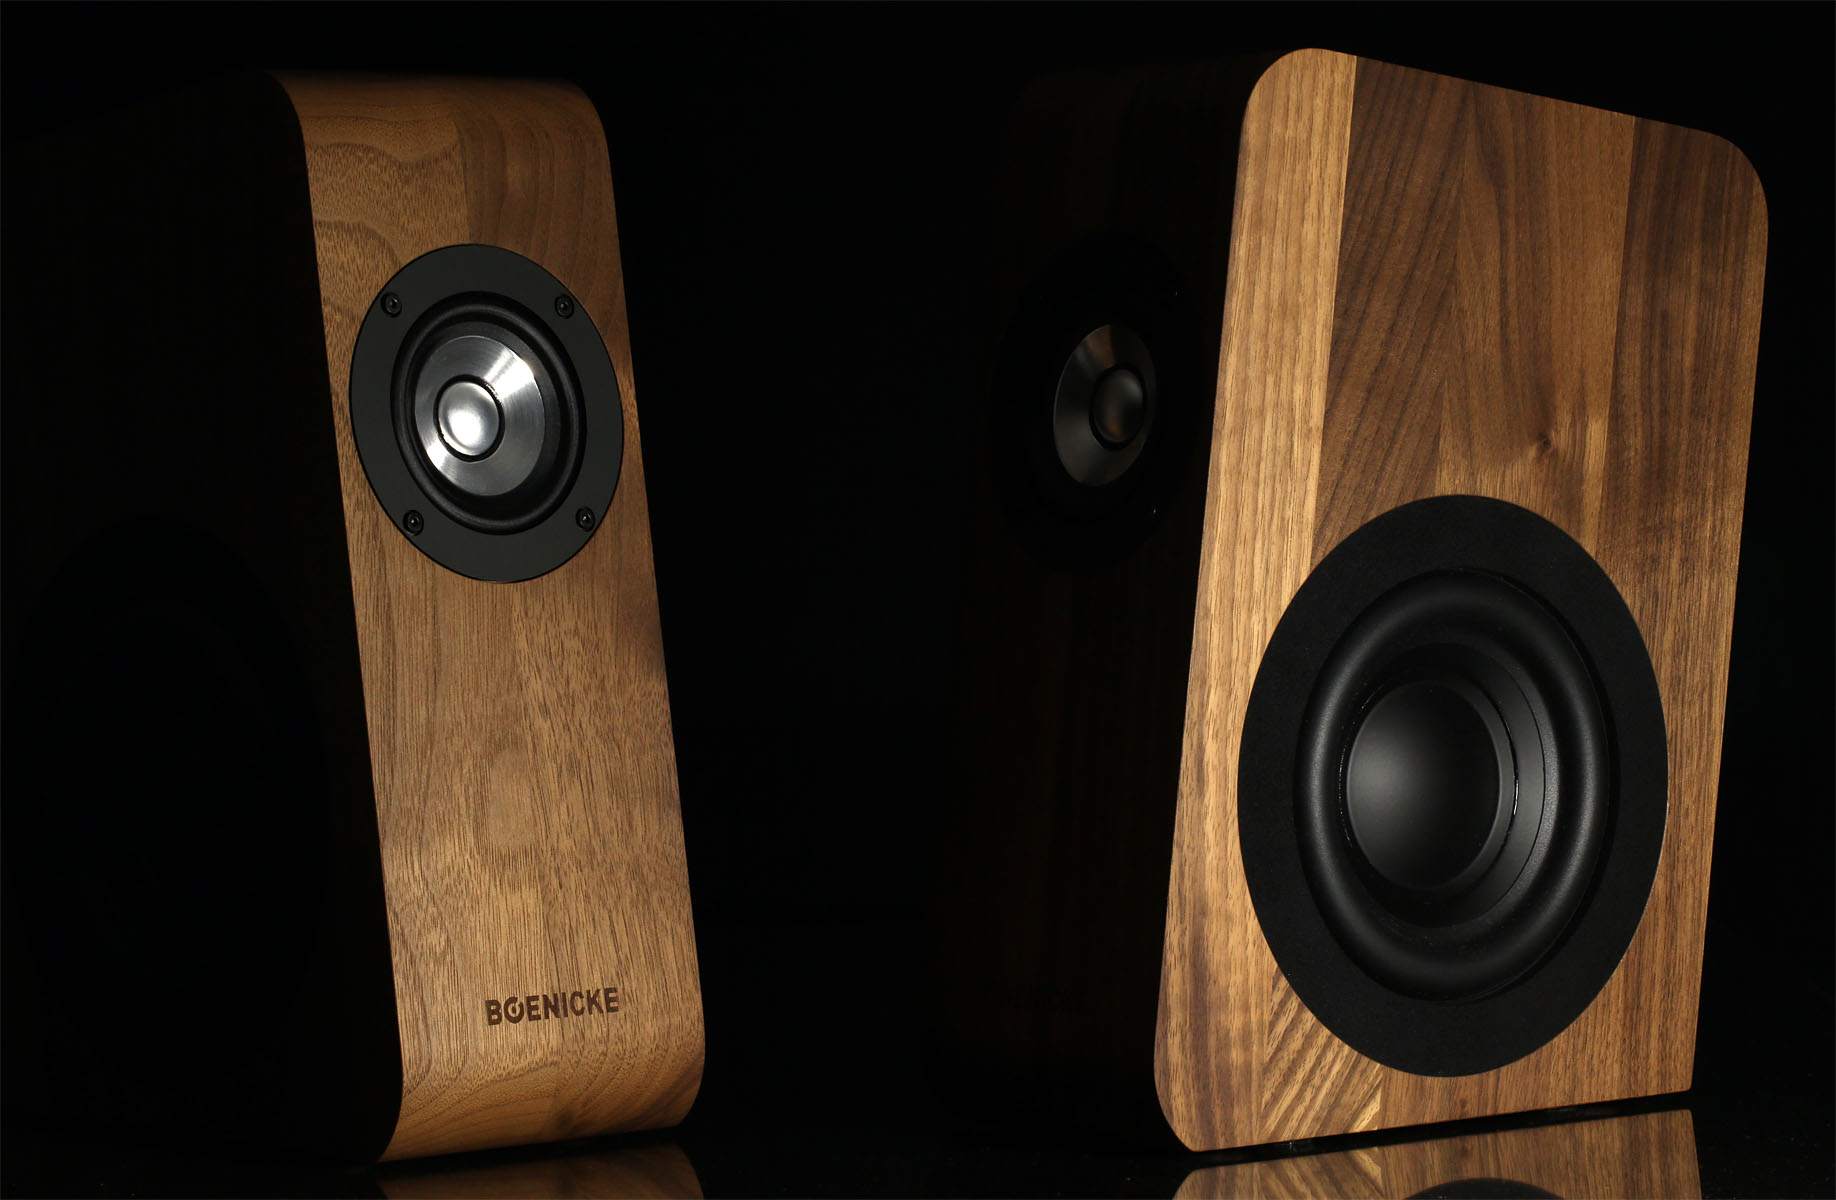 Comparing A Live Show Experienced In The Best Row To Listening Pair Of Ordinary Speakers At First Latter Model Impresses With Its Direct And